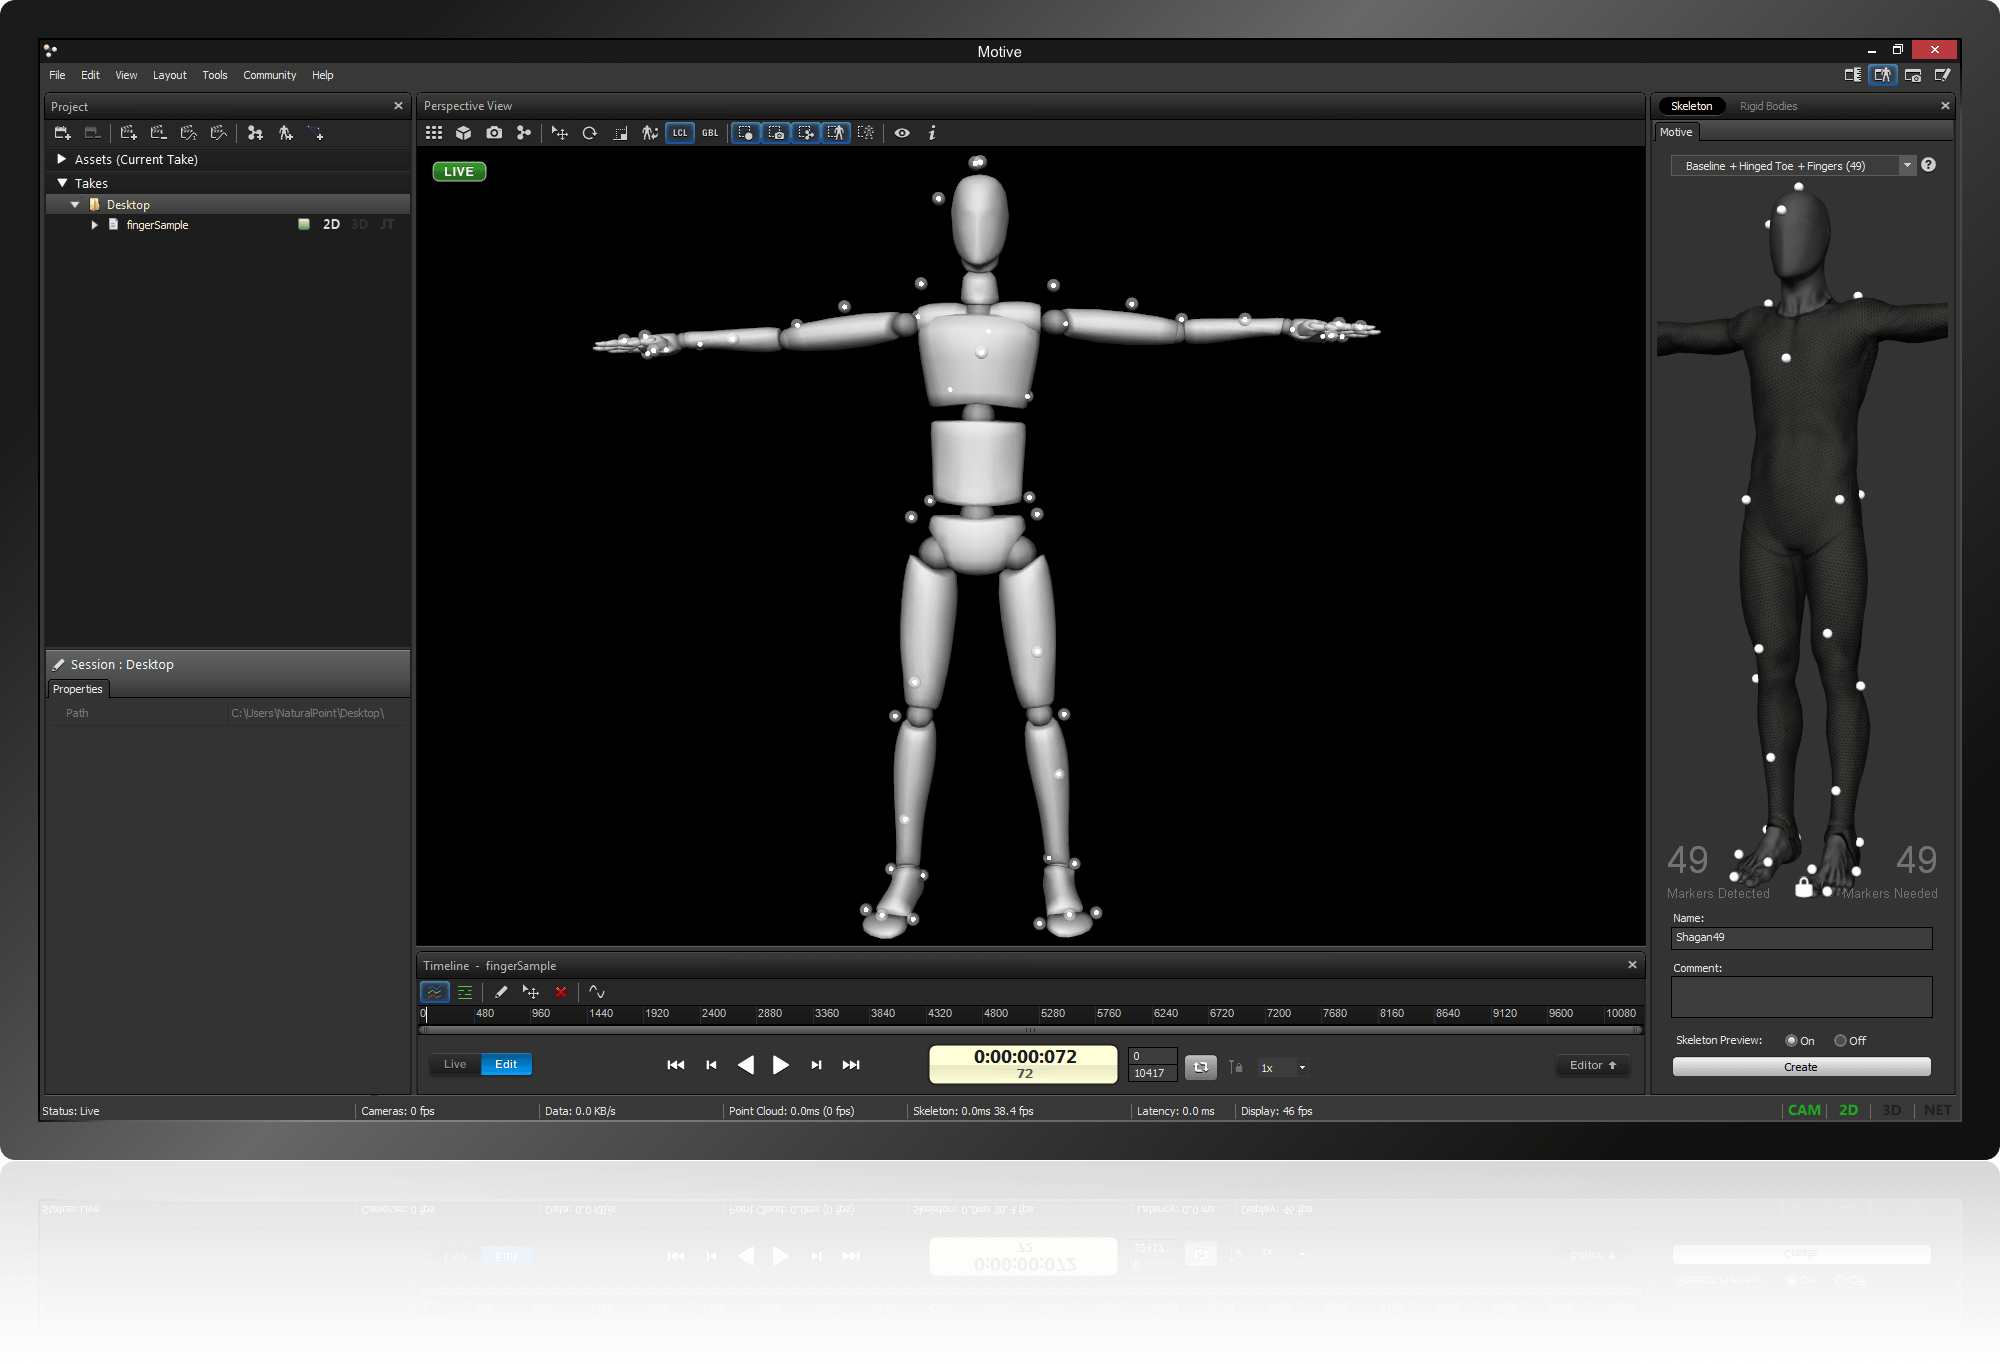 An image of Motive's easy calibration of the entire body in just a few clicks.